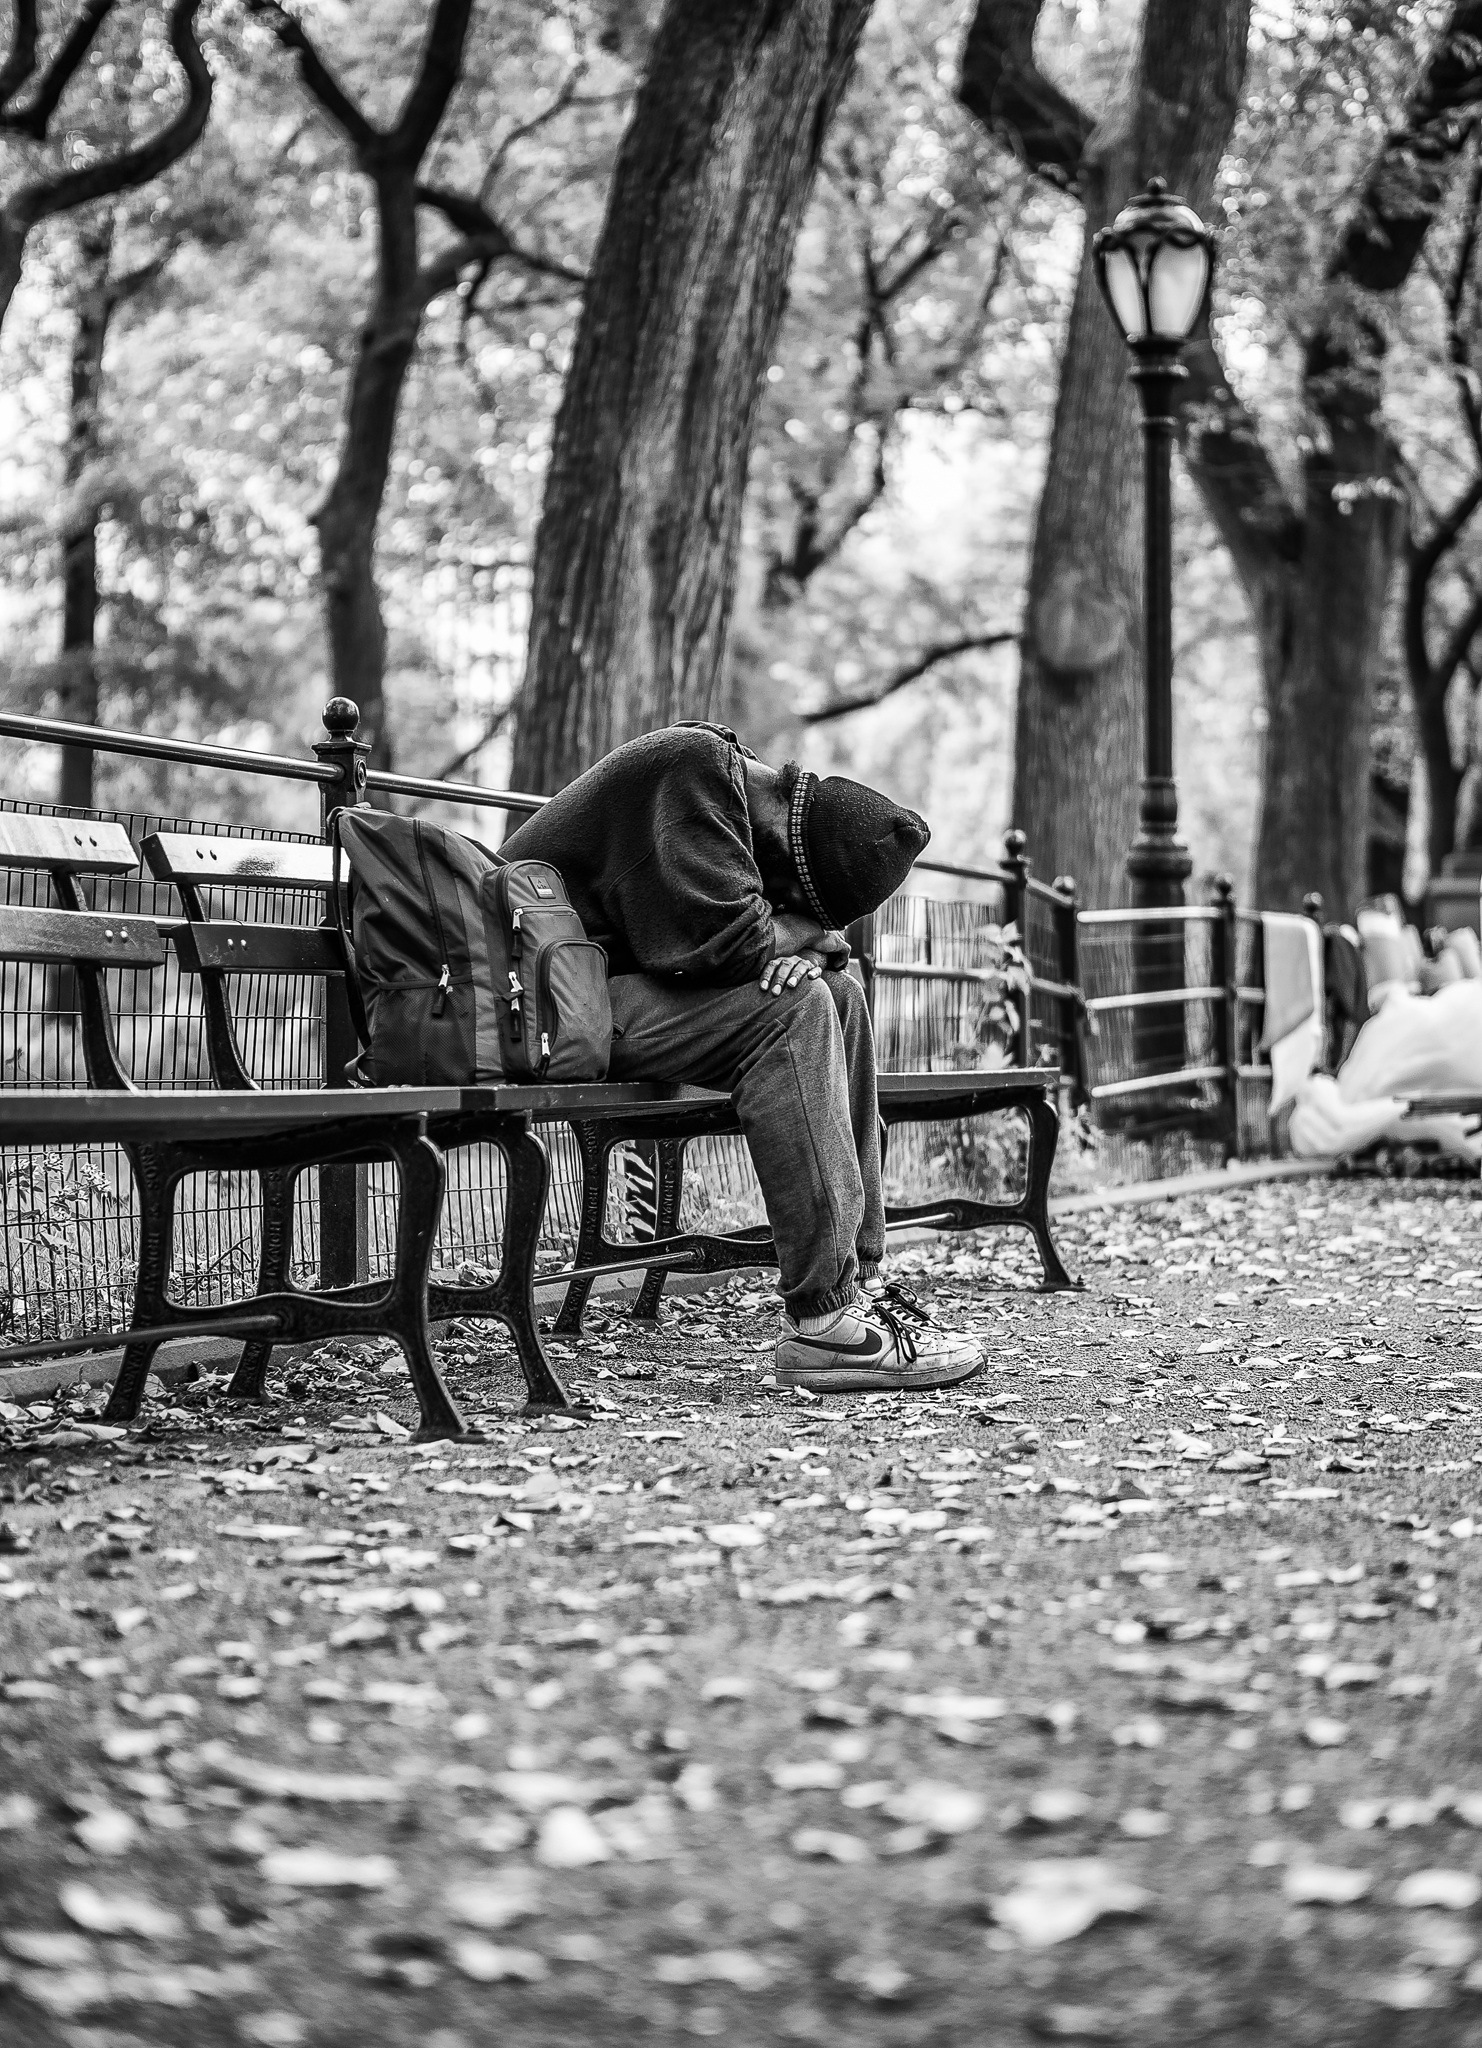 Photo in Street Photography #usa #bader.fabian #bader #america #unitedstatesofamerica #unitedstates #newyork #newyorkcity #ny #nyc #bigapple #manhattan #centralpark #park #day #blackandwhite #monochrome #streetlife #streetphotography #peoples #unsharpness #bestview #sleeping #homeless